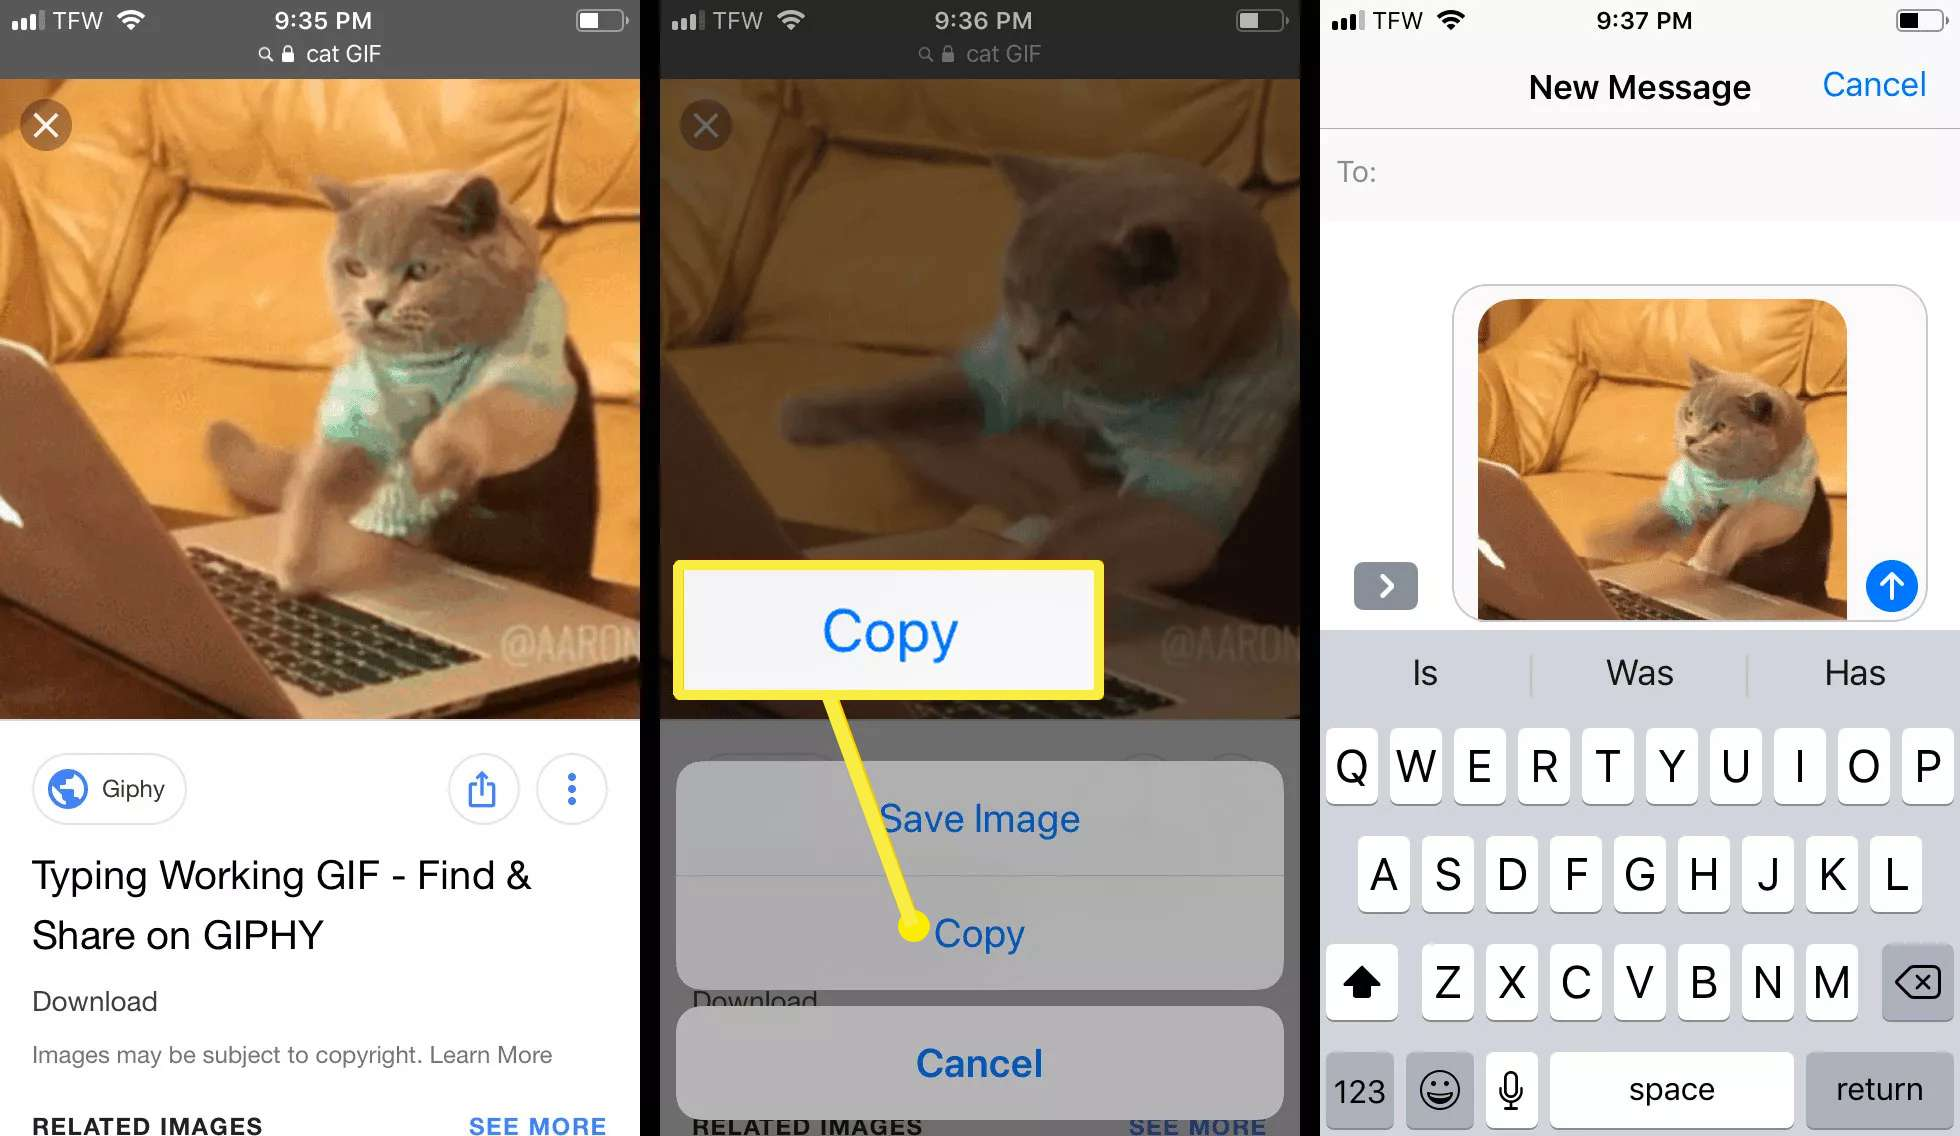 Saving a GIF from the internet to send on your iPhone